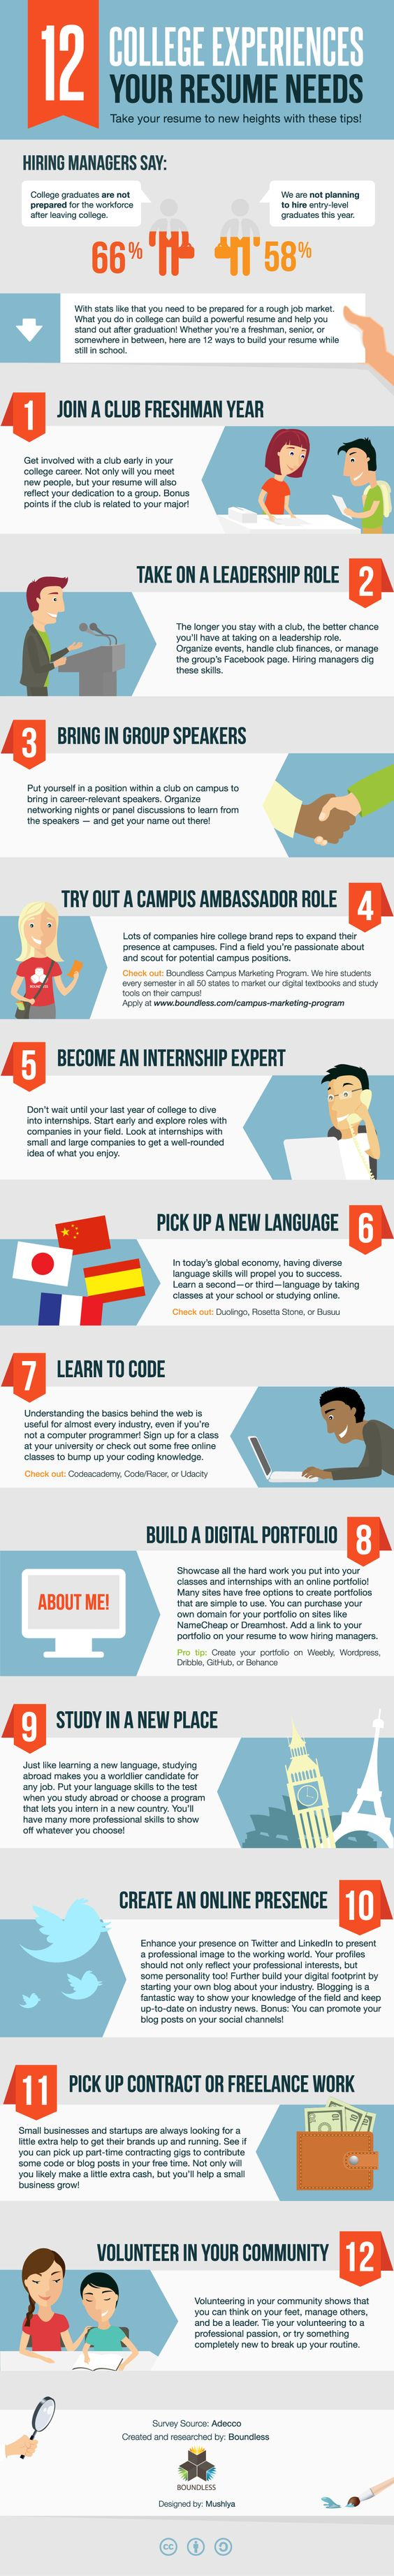 12 things you need to do in college in order to have one stellar working on your resume check this out 12 college experiences your